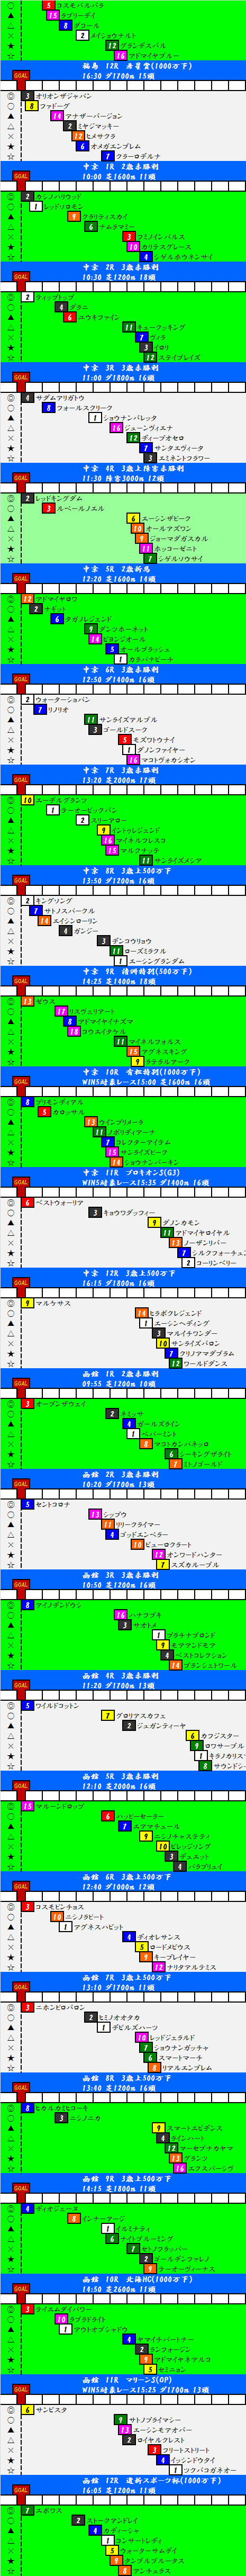 201407132.png